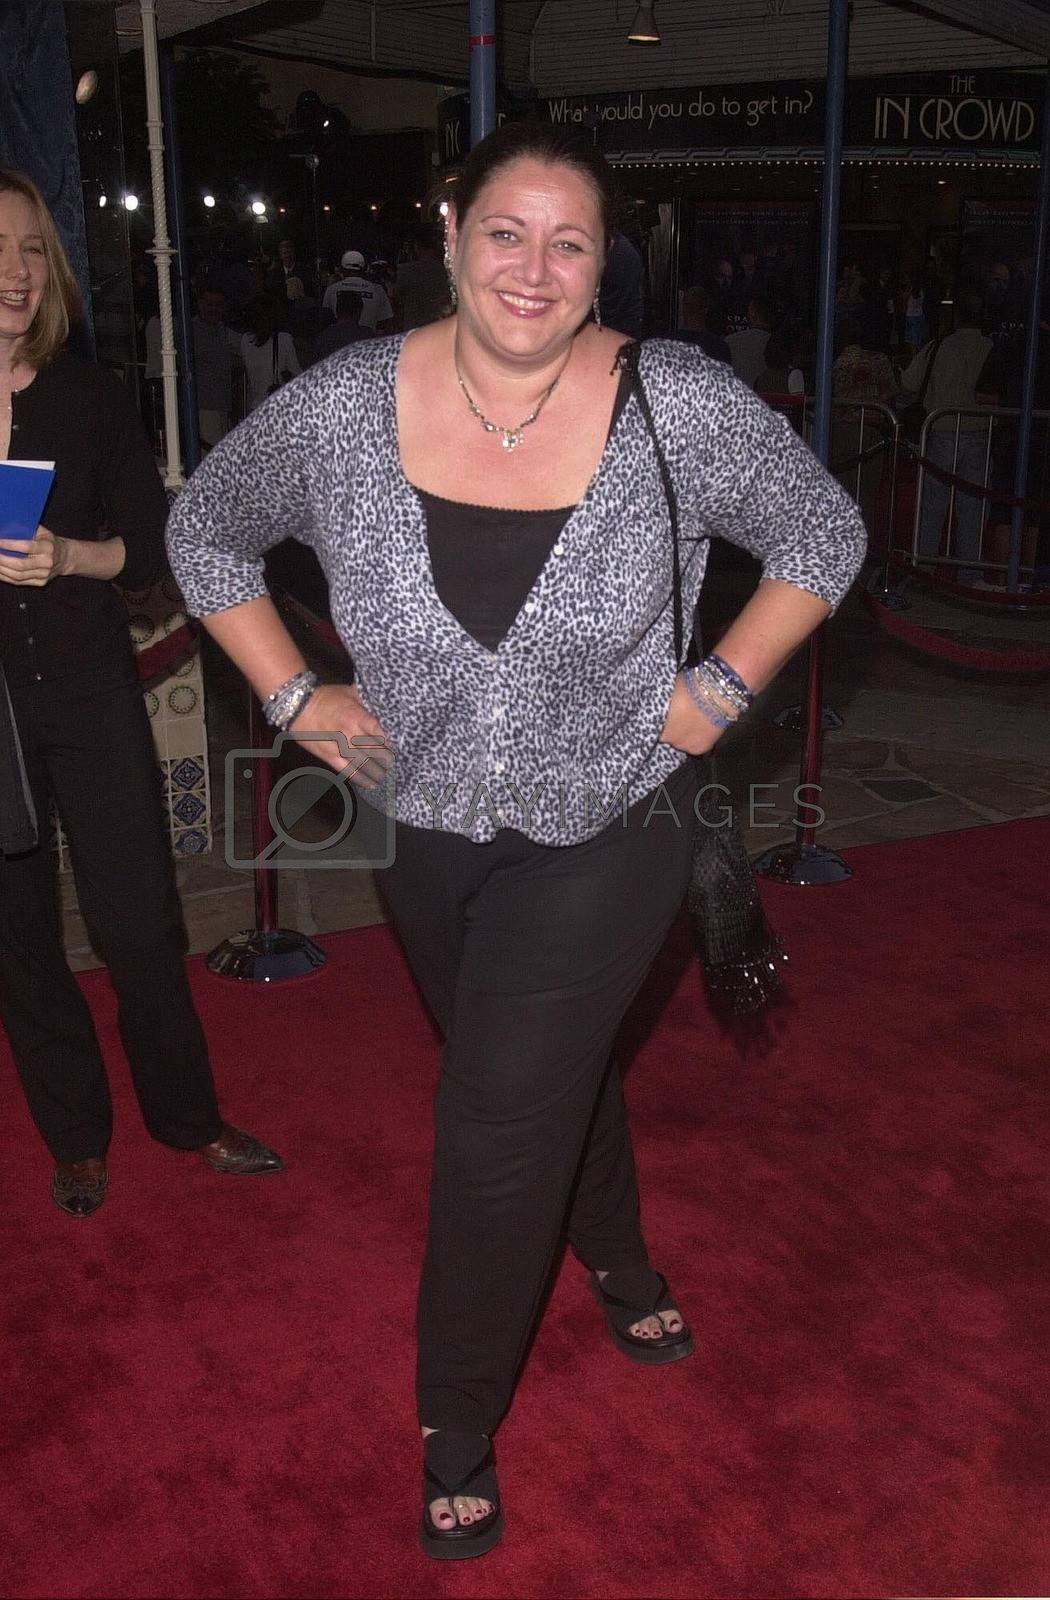 """Camryn Manheim at the premiere of """"Space Cowboys"""" in Westwood. 08-01-00"""